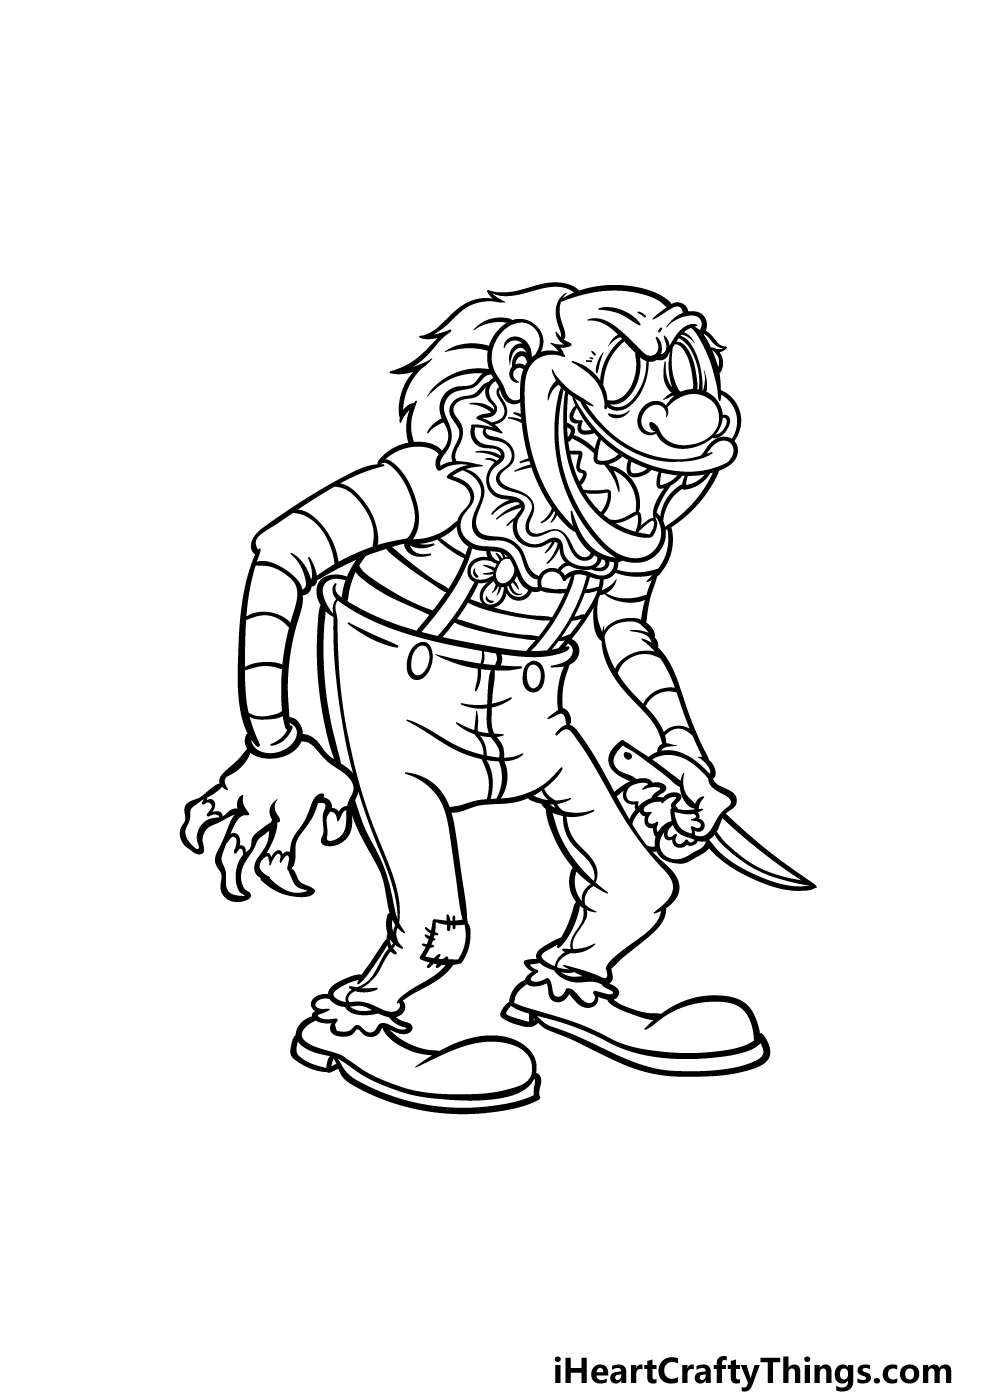 drawing a scary clown step 5